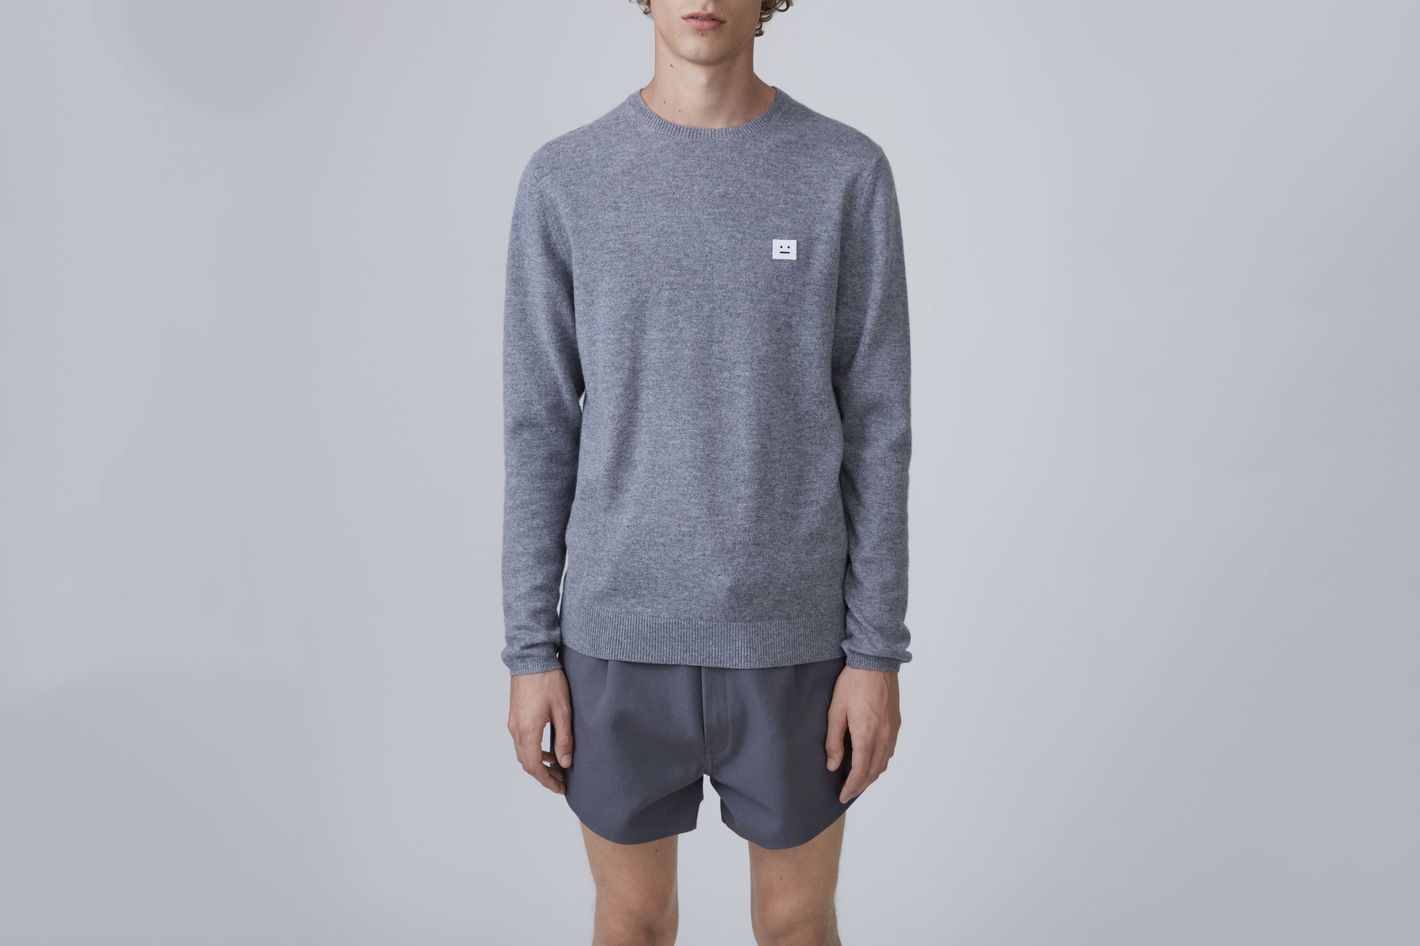 Dasher Face Gray Melange Sweater